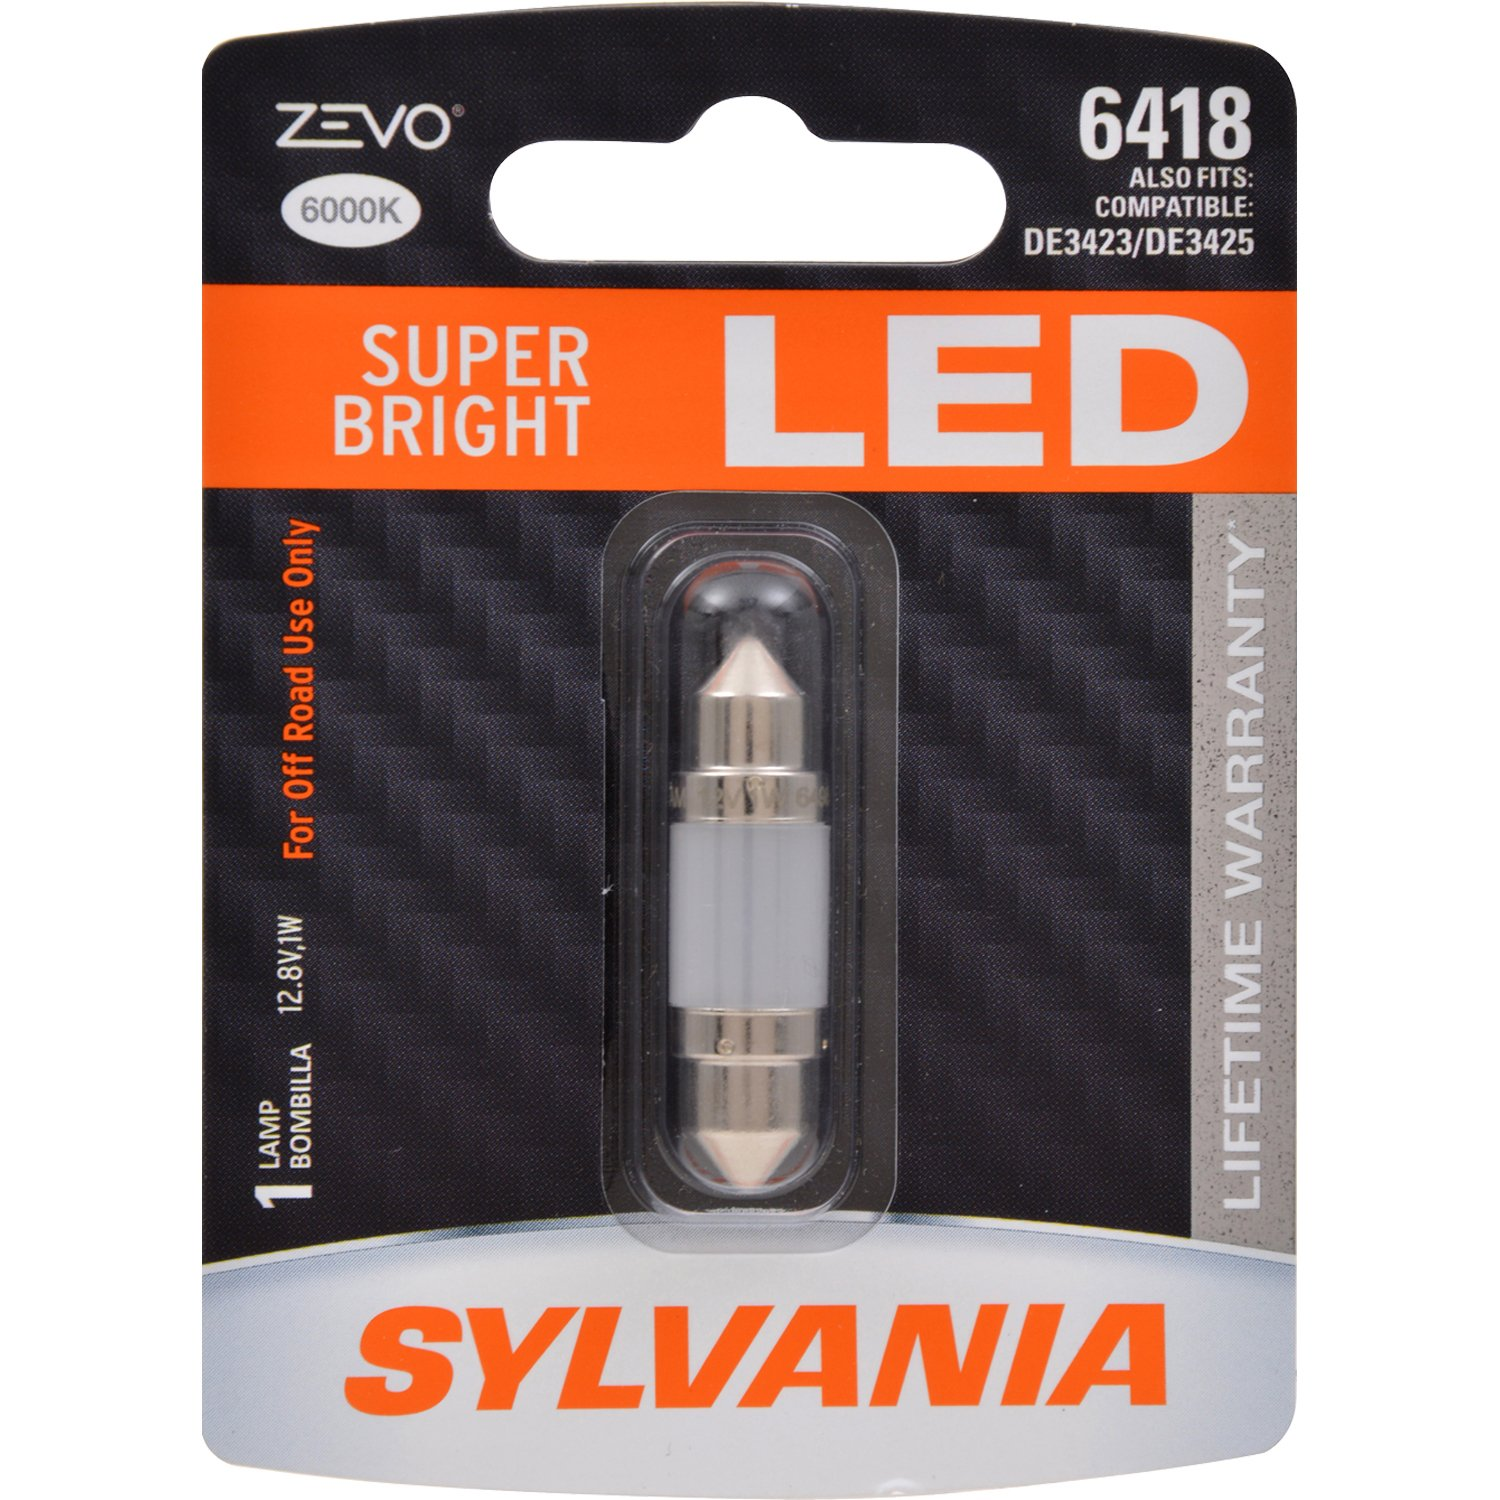 Trunk Bright LED Bulb Cargo and License Plate Domr Contains 1 Bulb Ideal for Interior Lighting 2825 T10 W5W ZEVO LED White Bulb Map SYLVANIA